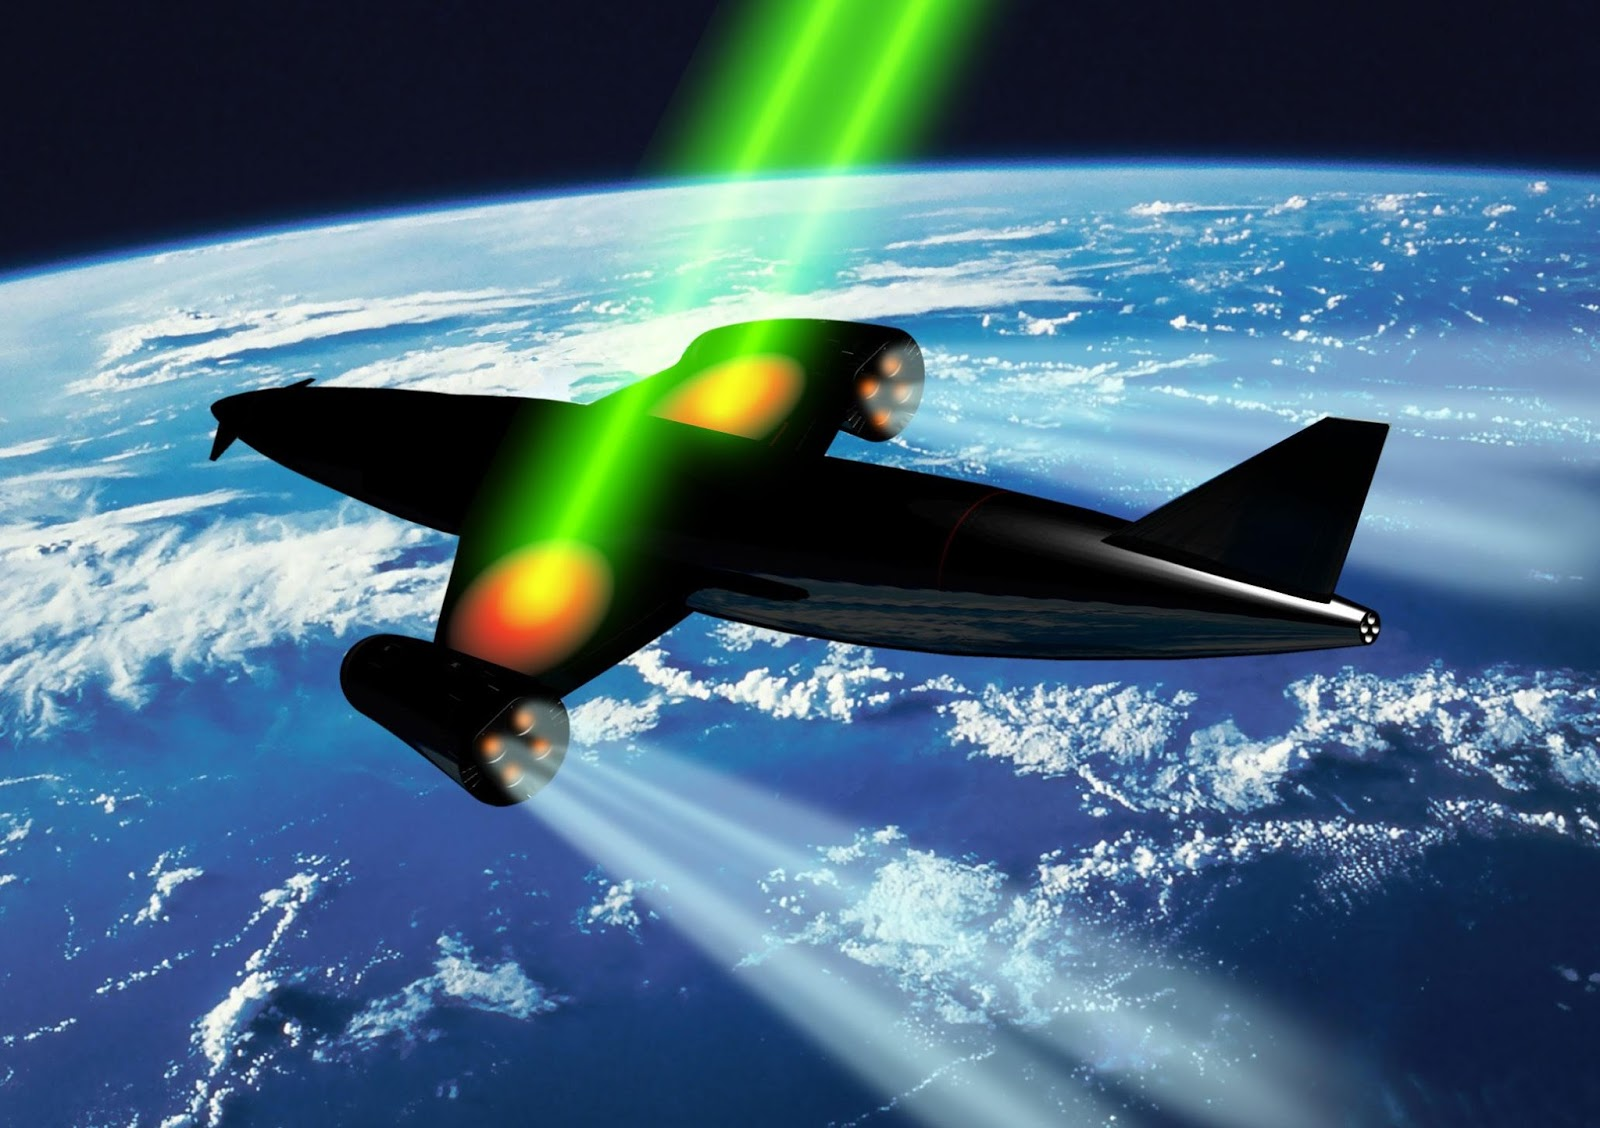 Nasa Laser Propulsion System Could Revolutionize Space Travel